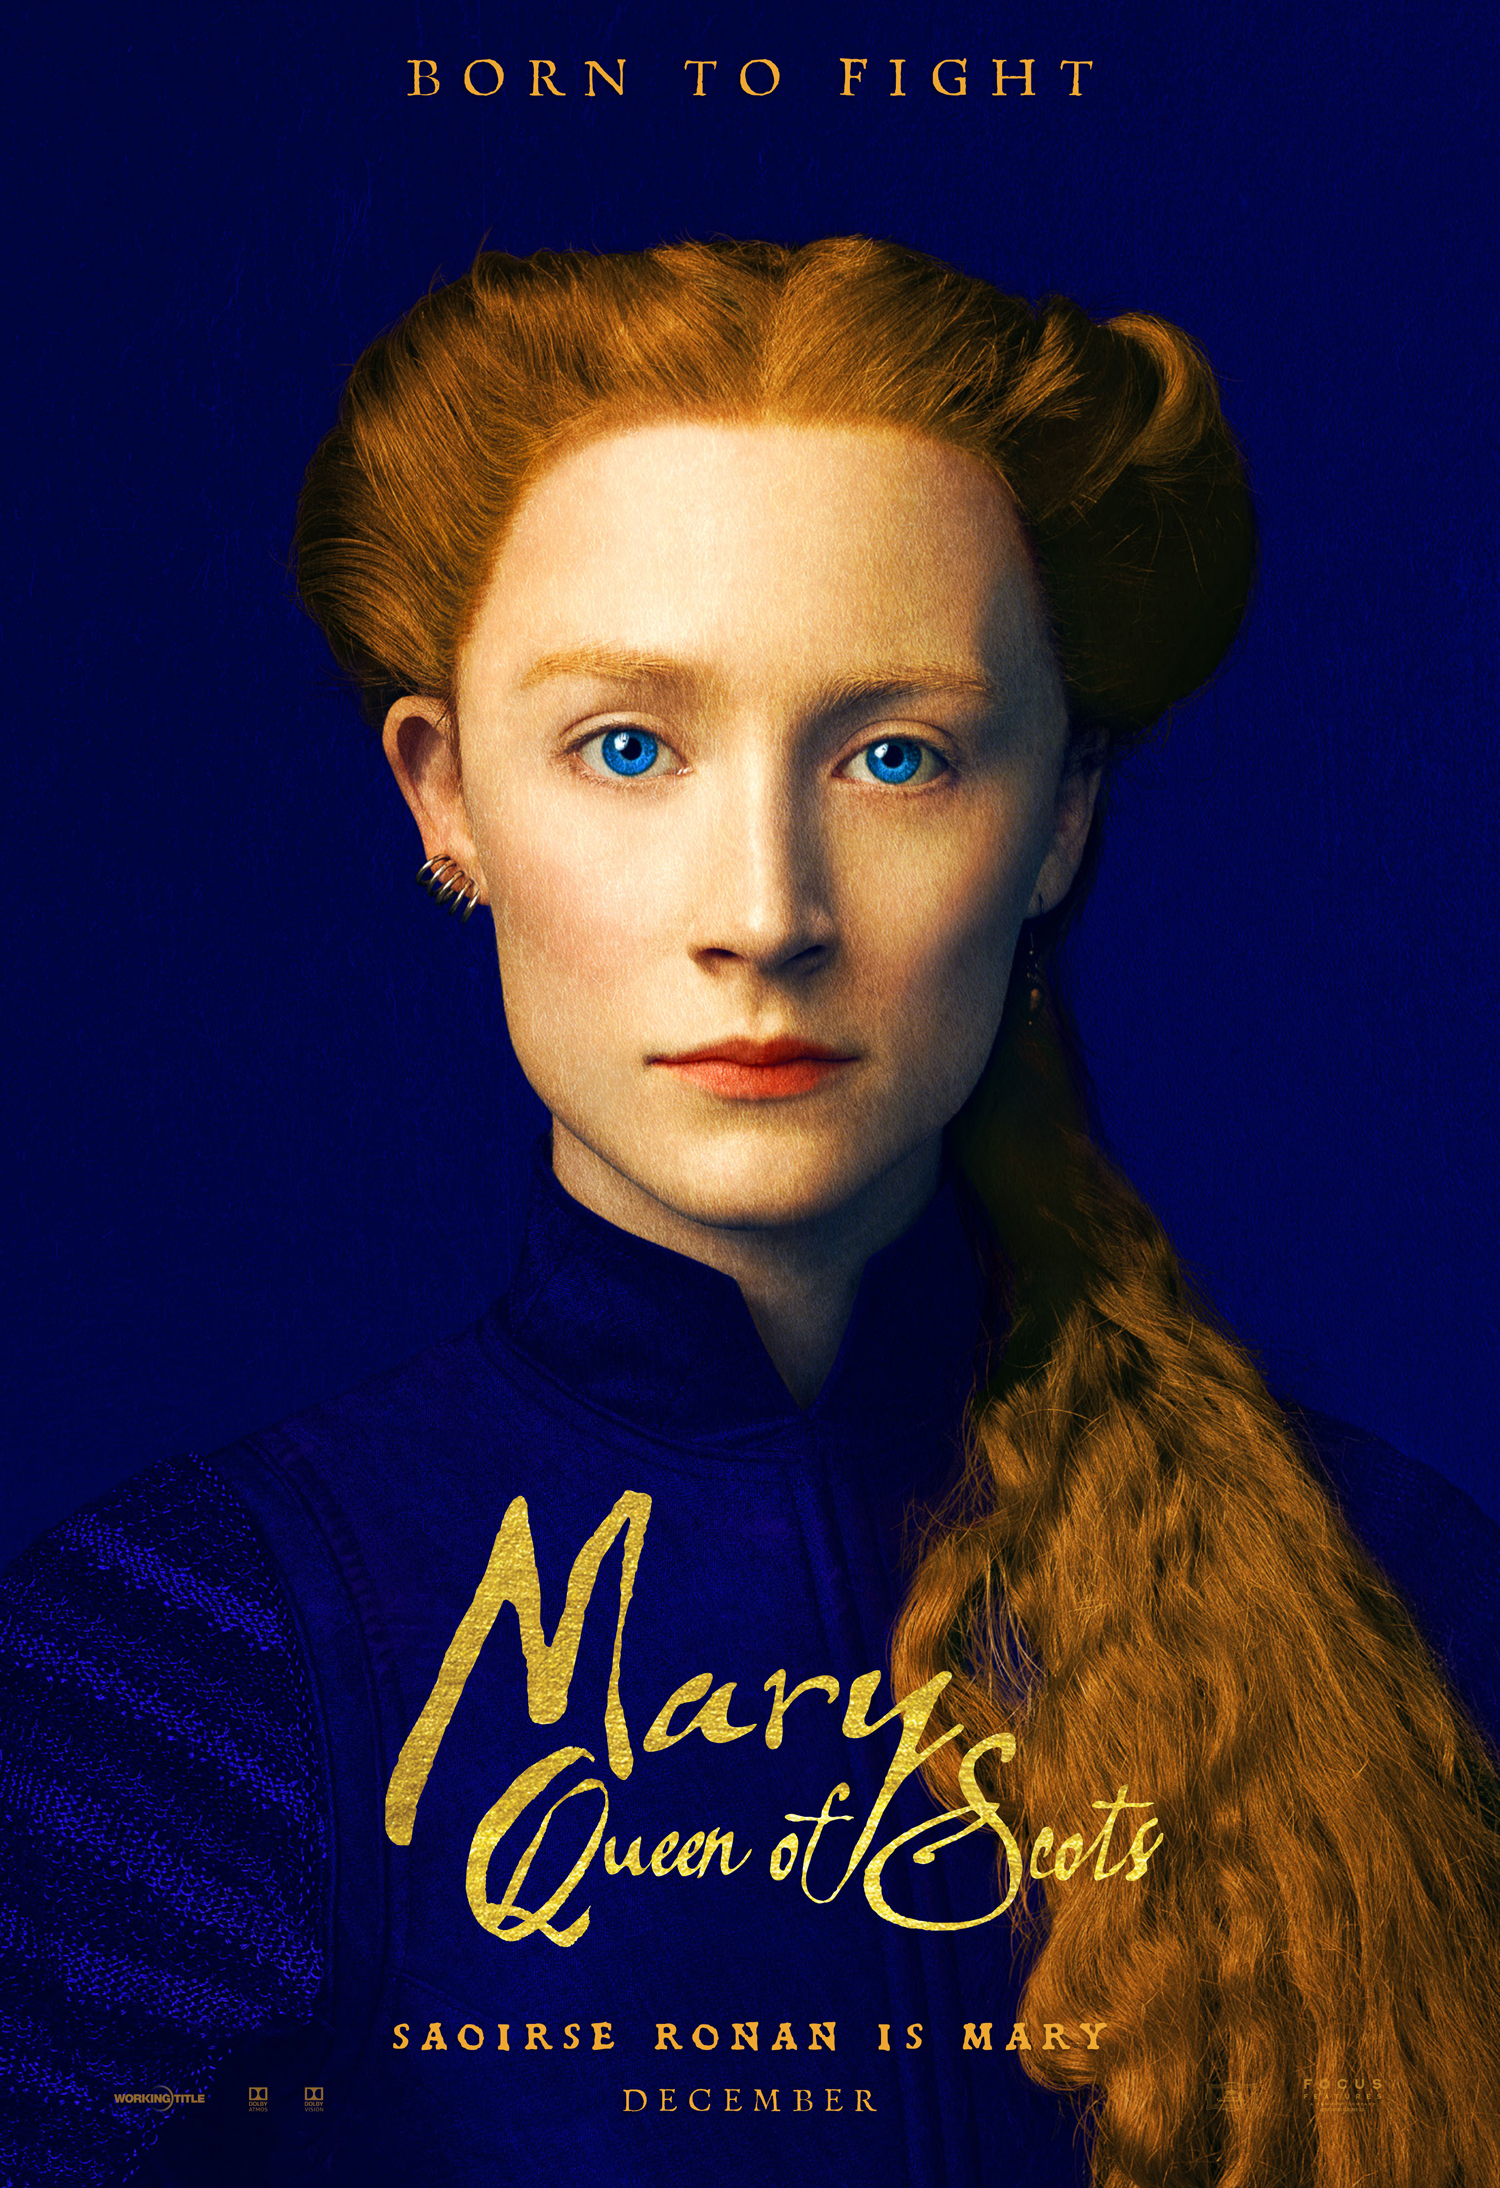 mary-queen-of-scots-poster-saoirse-ronan.jpg